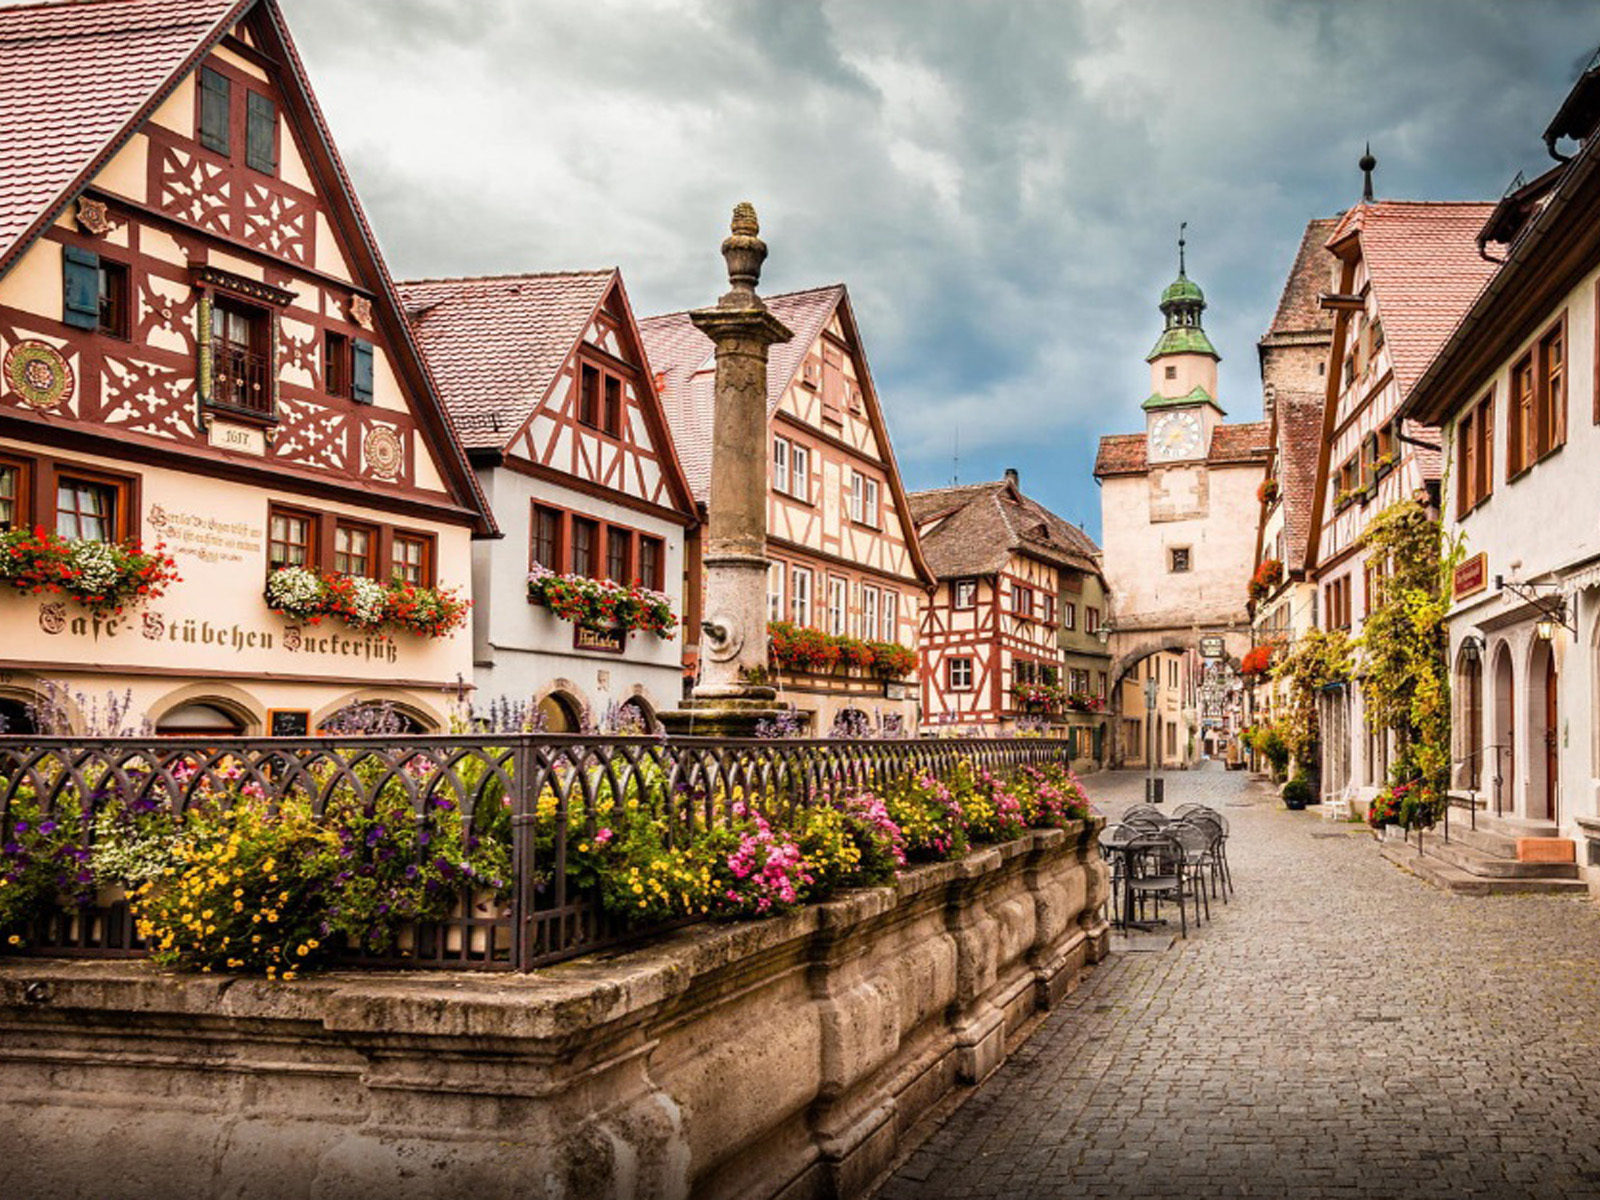 Cute Duck Wallpapers Wonderful Little Town In Germany Rothenburg Ob Der Tauber